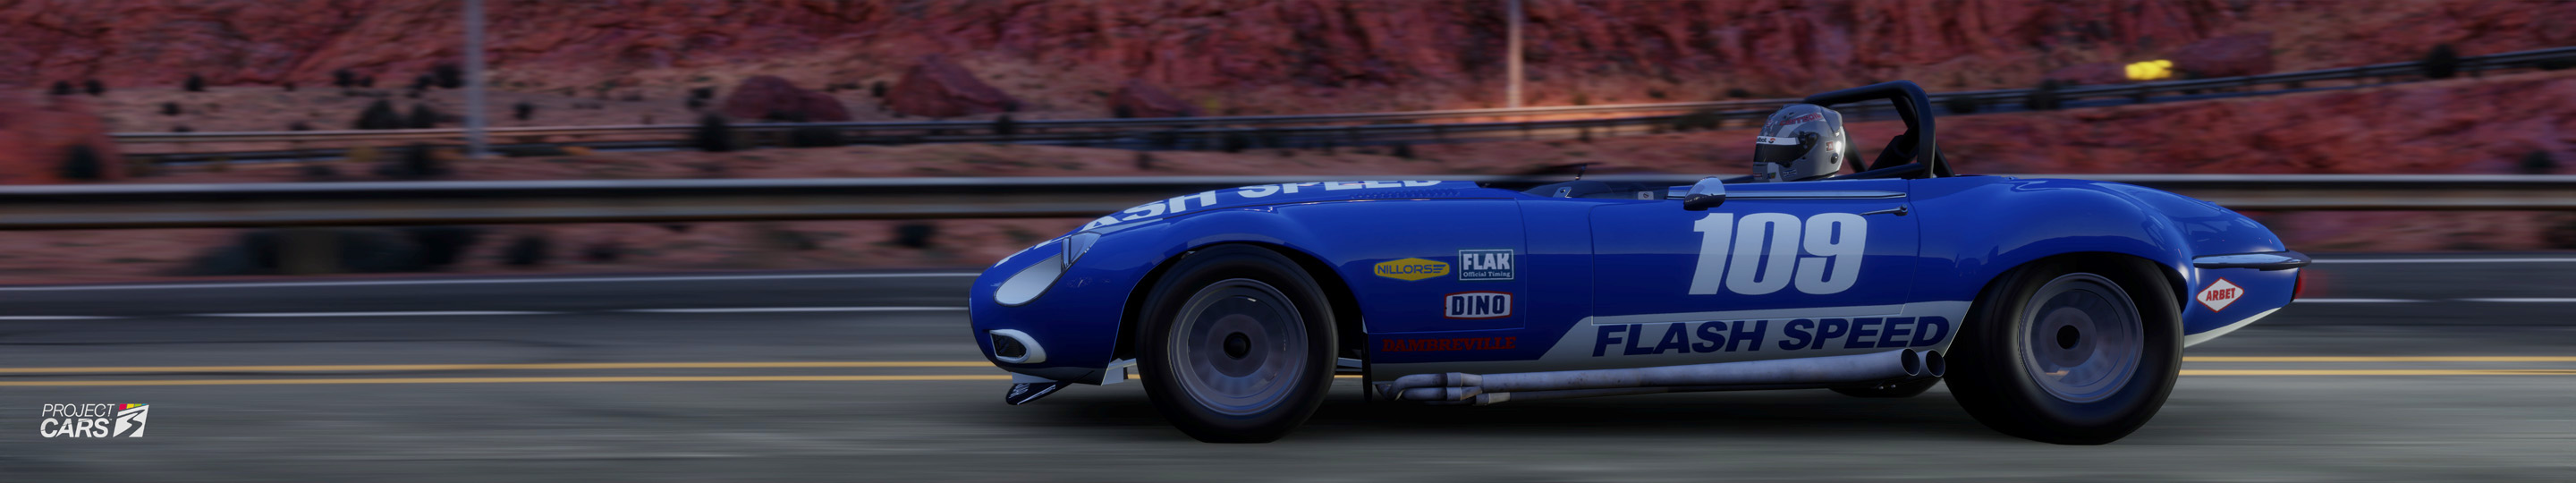 3 PROJECT CARS 3 MONUMENT CANYON with PIR RANGE CARS copy.jpg